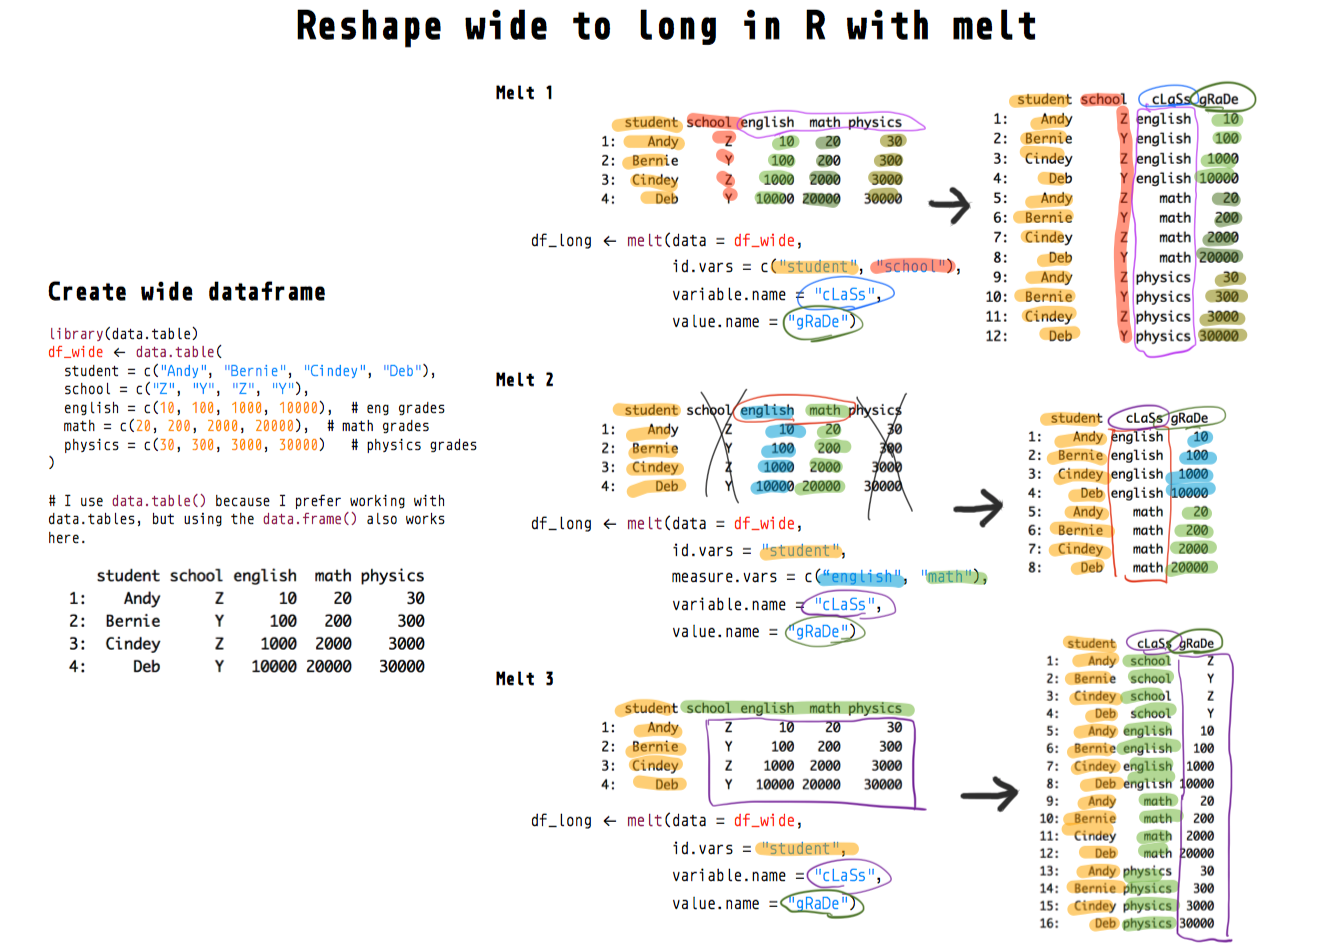 R melt() to reshape dataframes from wide to long